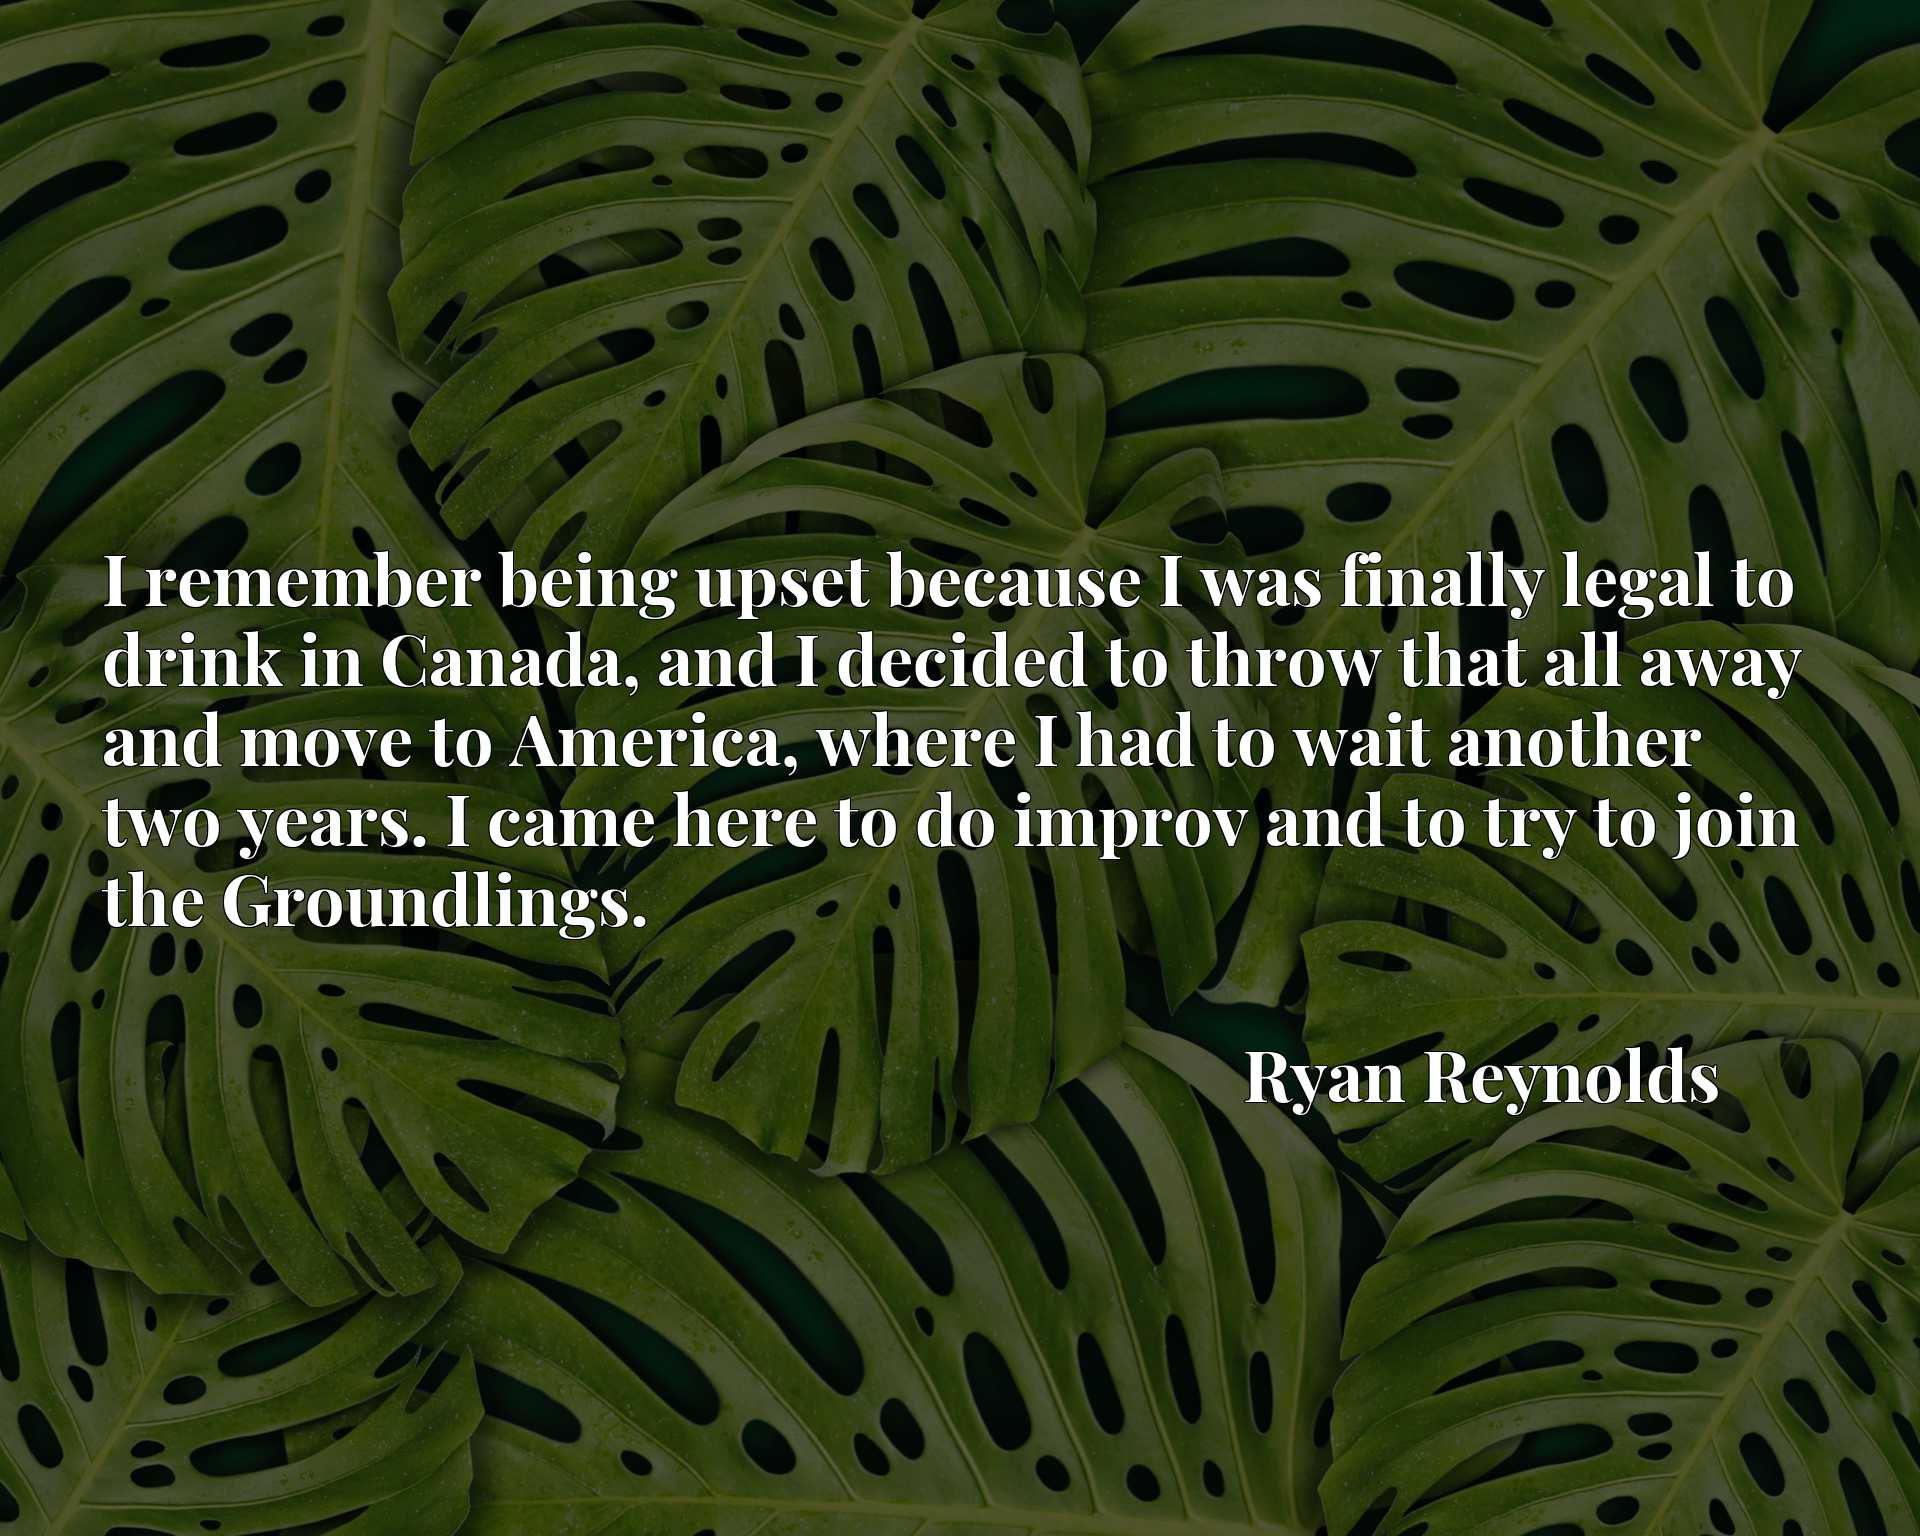 Quote Picture :I remember being upset because I was finally legal to drink in Canada, and I decided to throw that all away and move to America, where I had to wait another two years. I came here to do improv and to try to join the Groundlings.